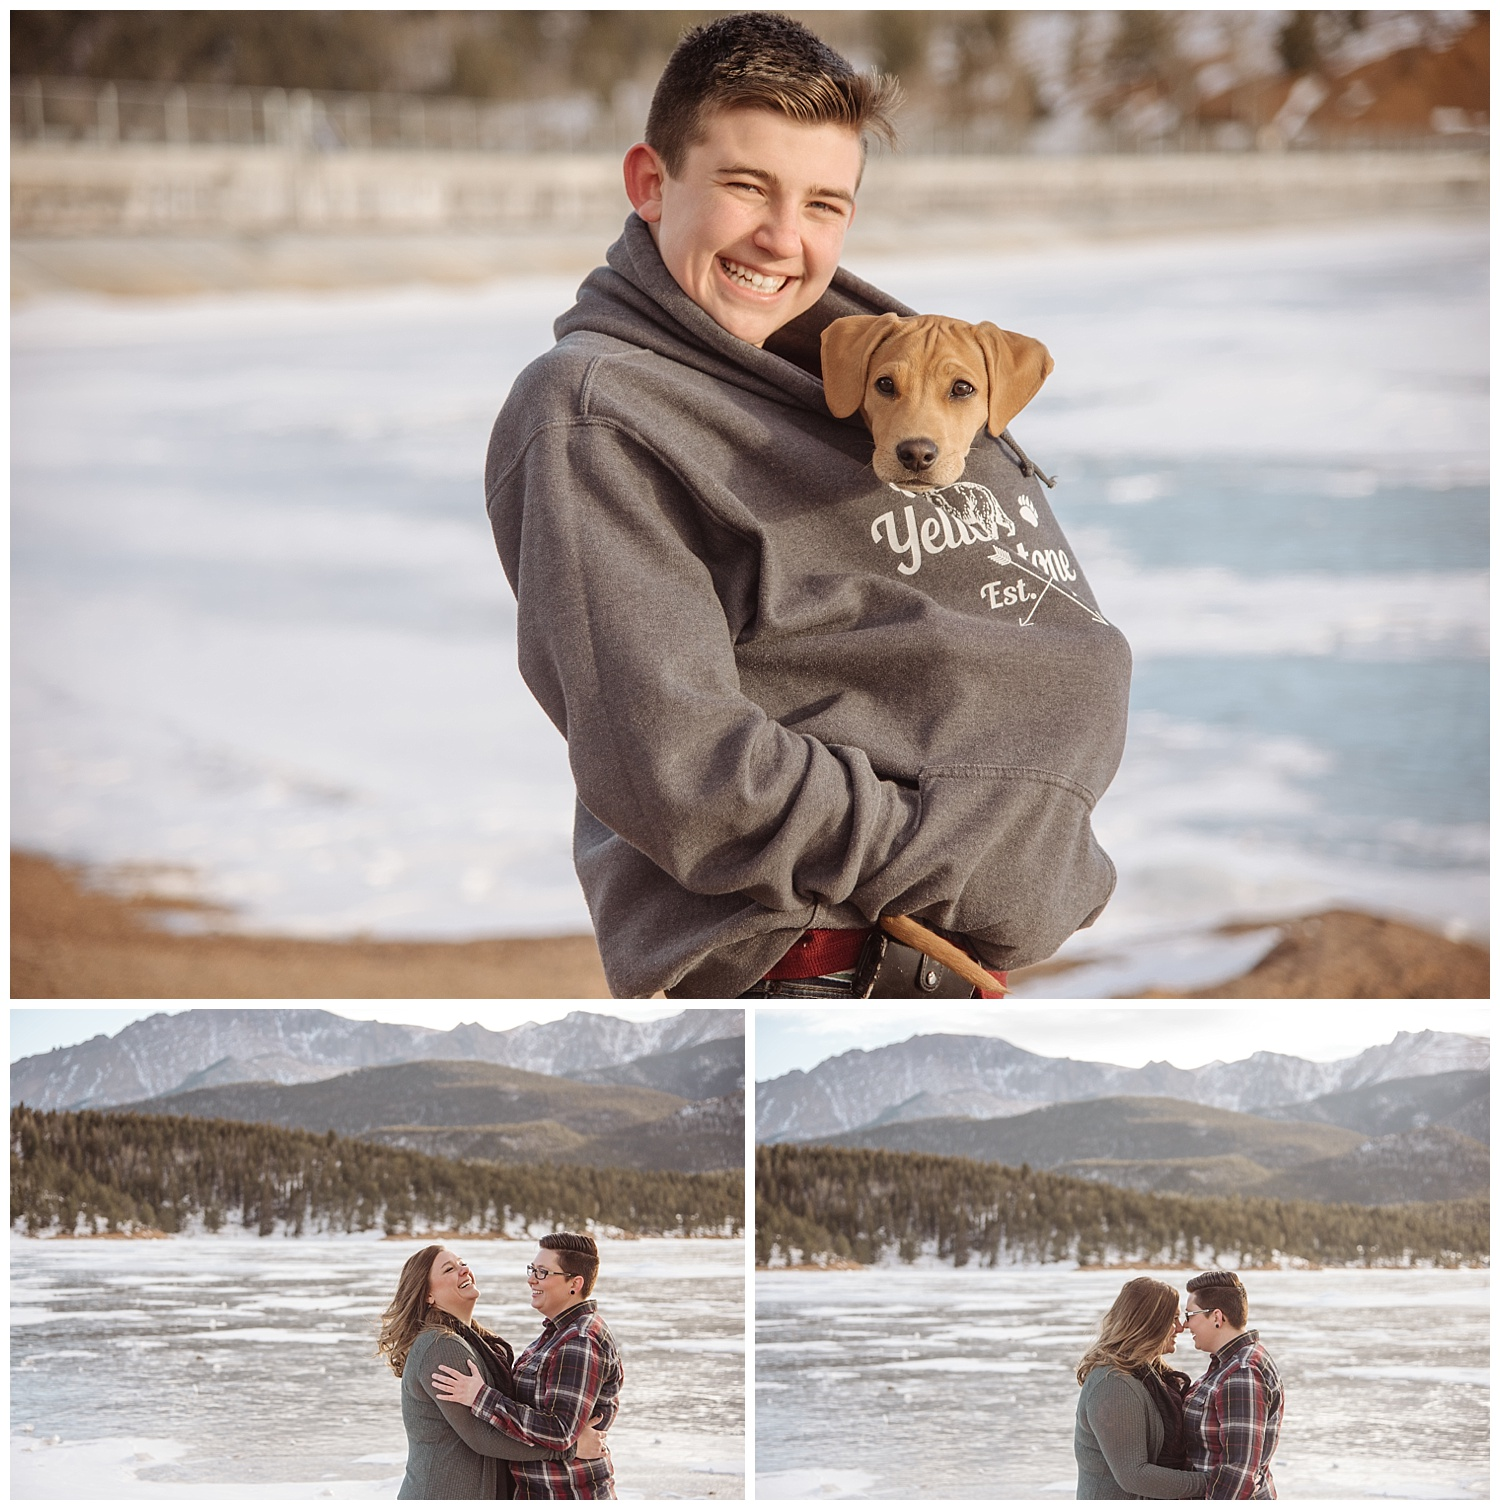 Young Man Holding Puppy in Sweater | Jenny and Tara's Epic Mountain Engagement Session | Pikes Peak, Colorado Photography | Farm Wedding Photographer | Apollo Fields Wedding Photojournalism